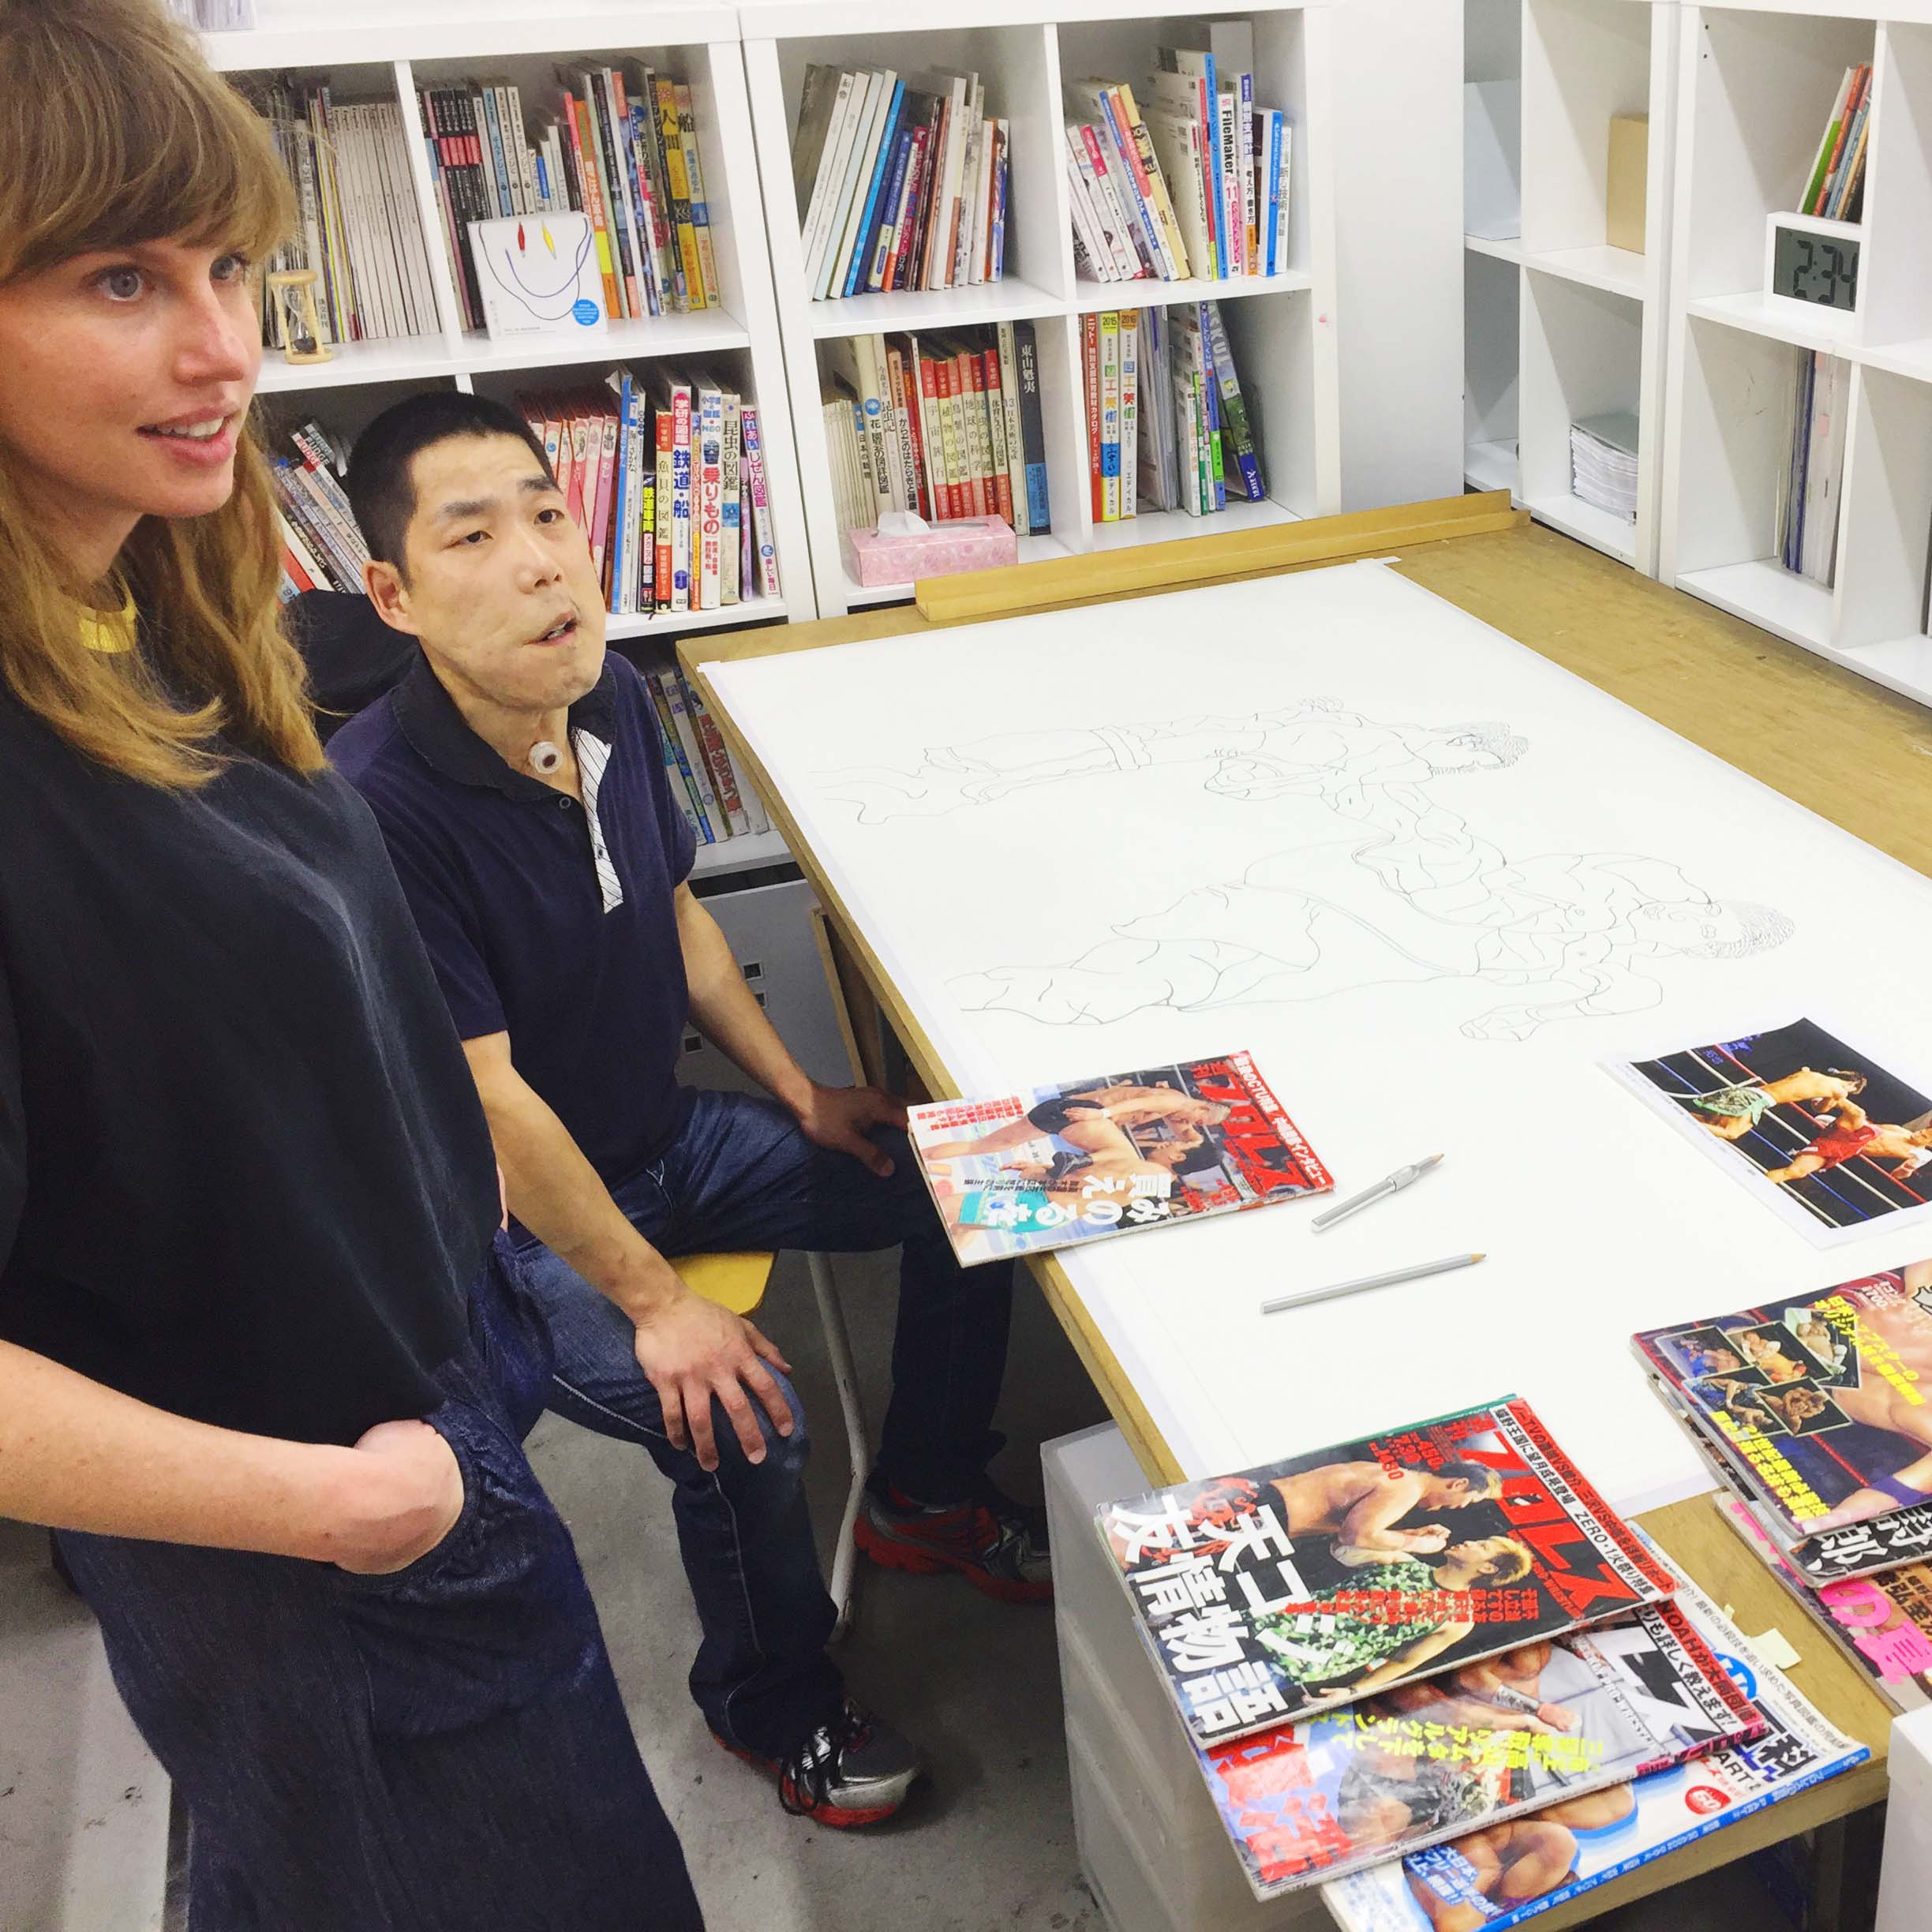 Lisa Slominski with artist Tomoyuki Shinki at Atelier Incurve, Osaka, Japan in 2017.